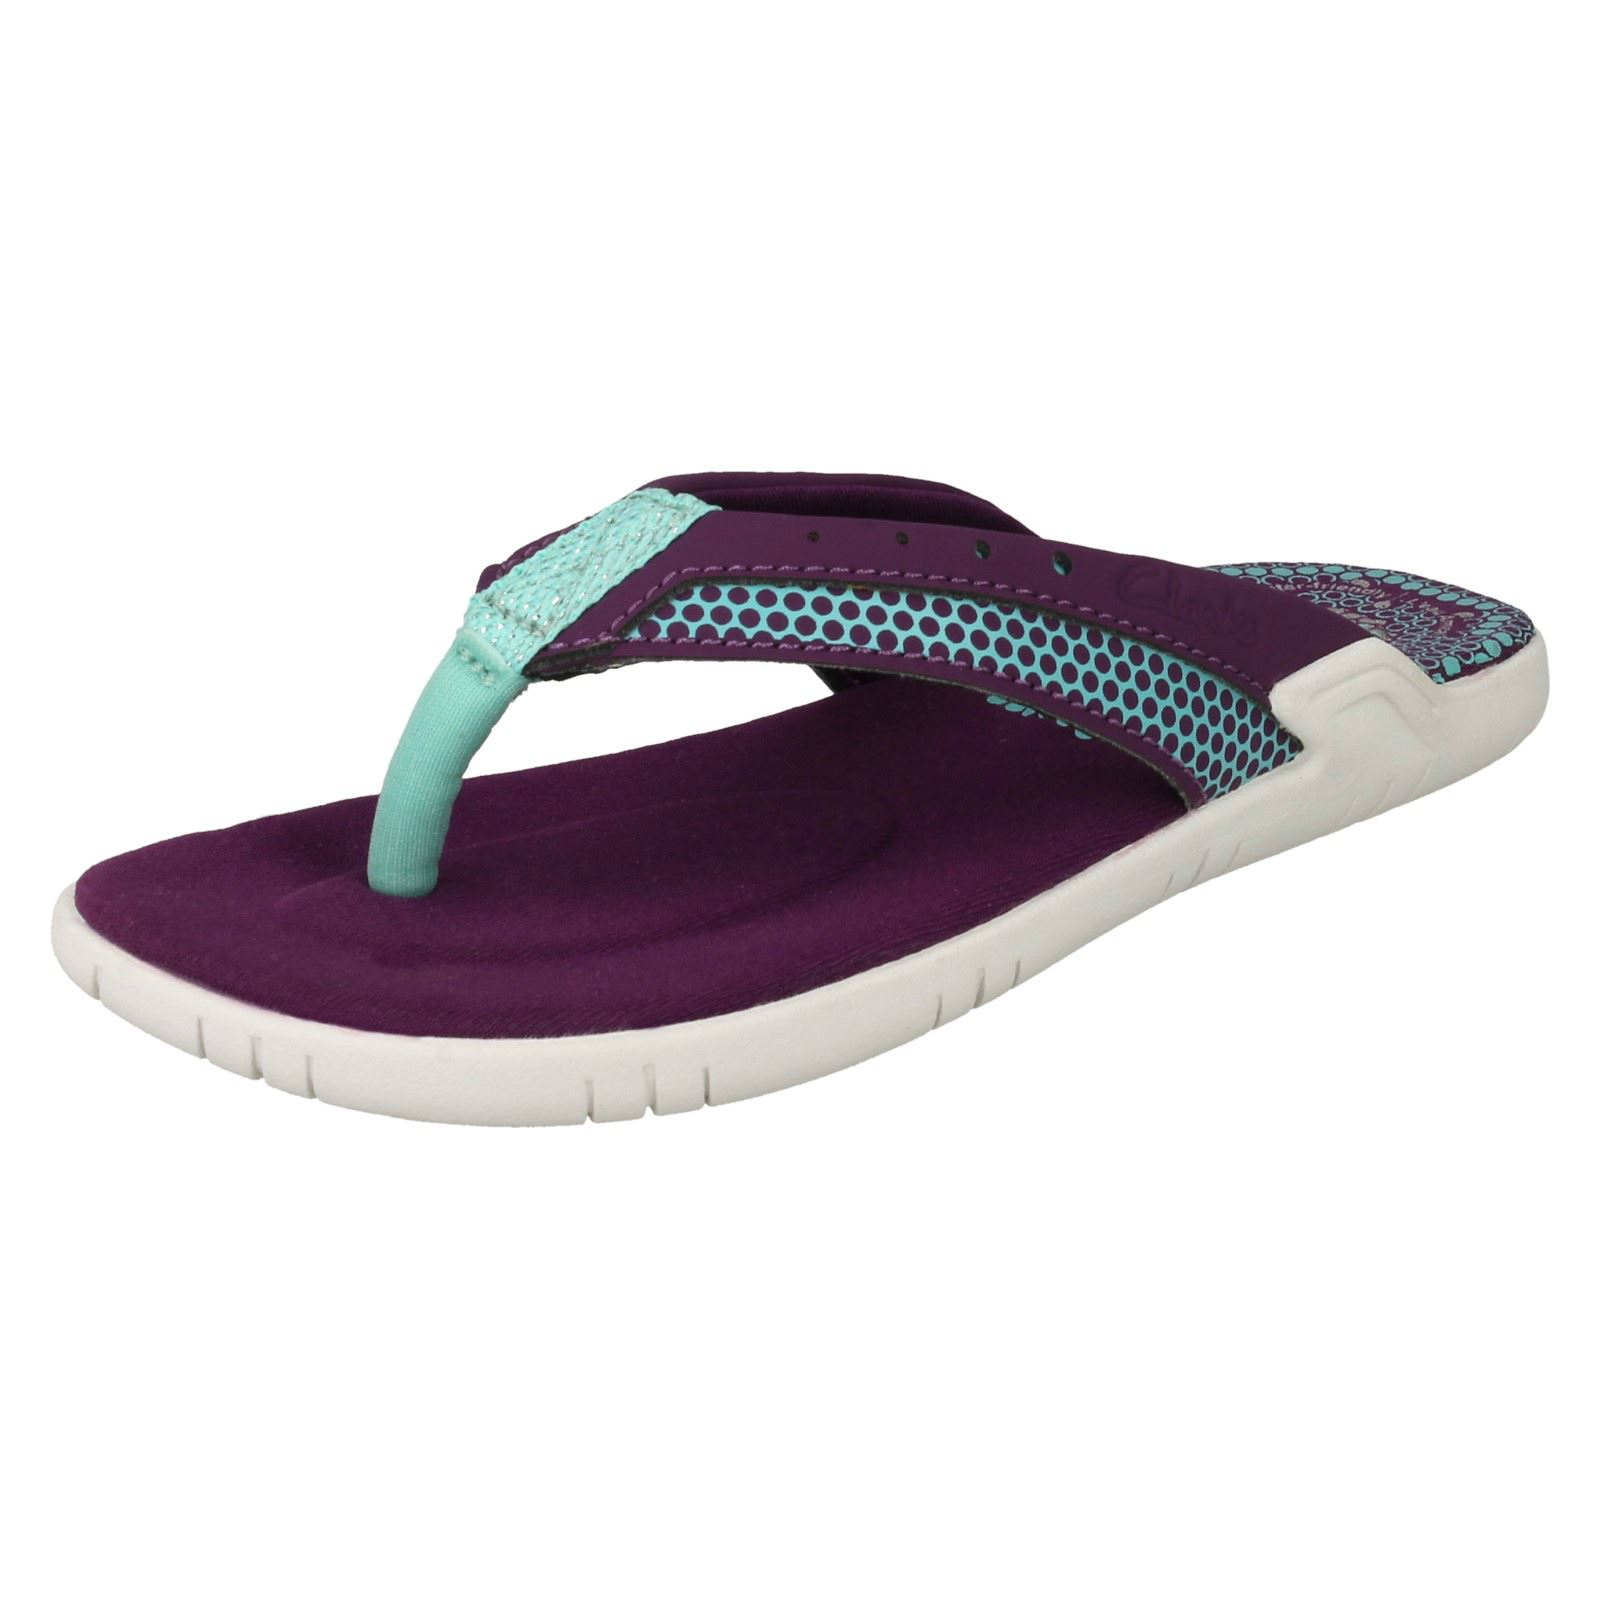 573373949a4 Girls Clarks Sandals Bonza Lass 11 UK Purple F. About this product. Picture  1 of 10  Picture 2 of 10 ...